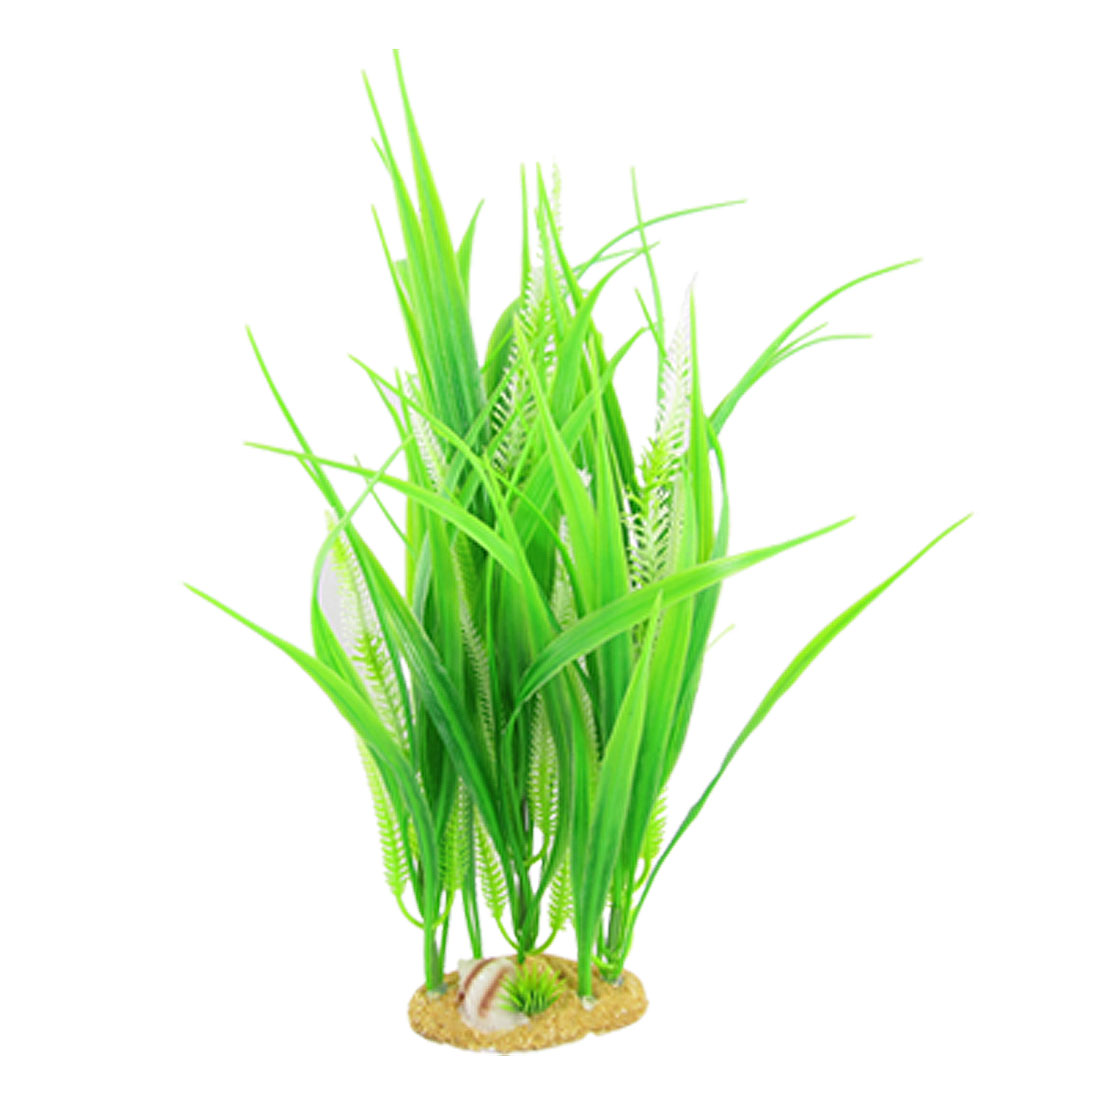 Green Plastic Plant Grass Ornament w Base for Aquarium